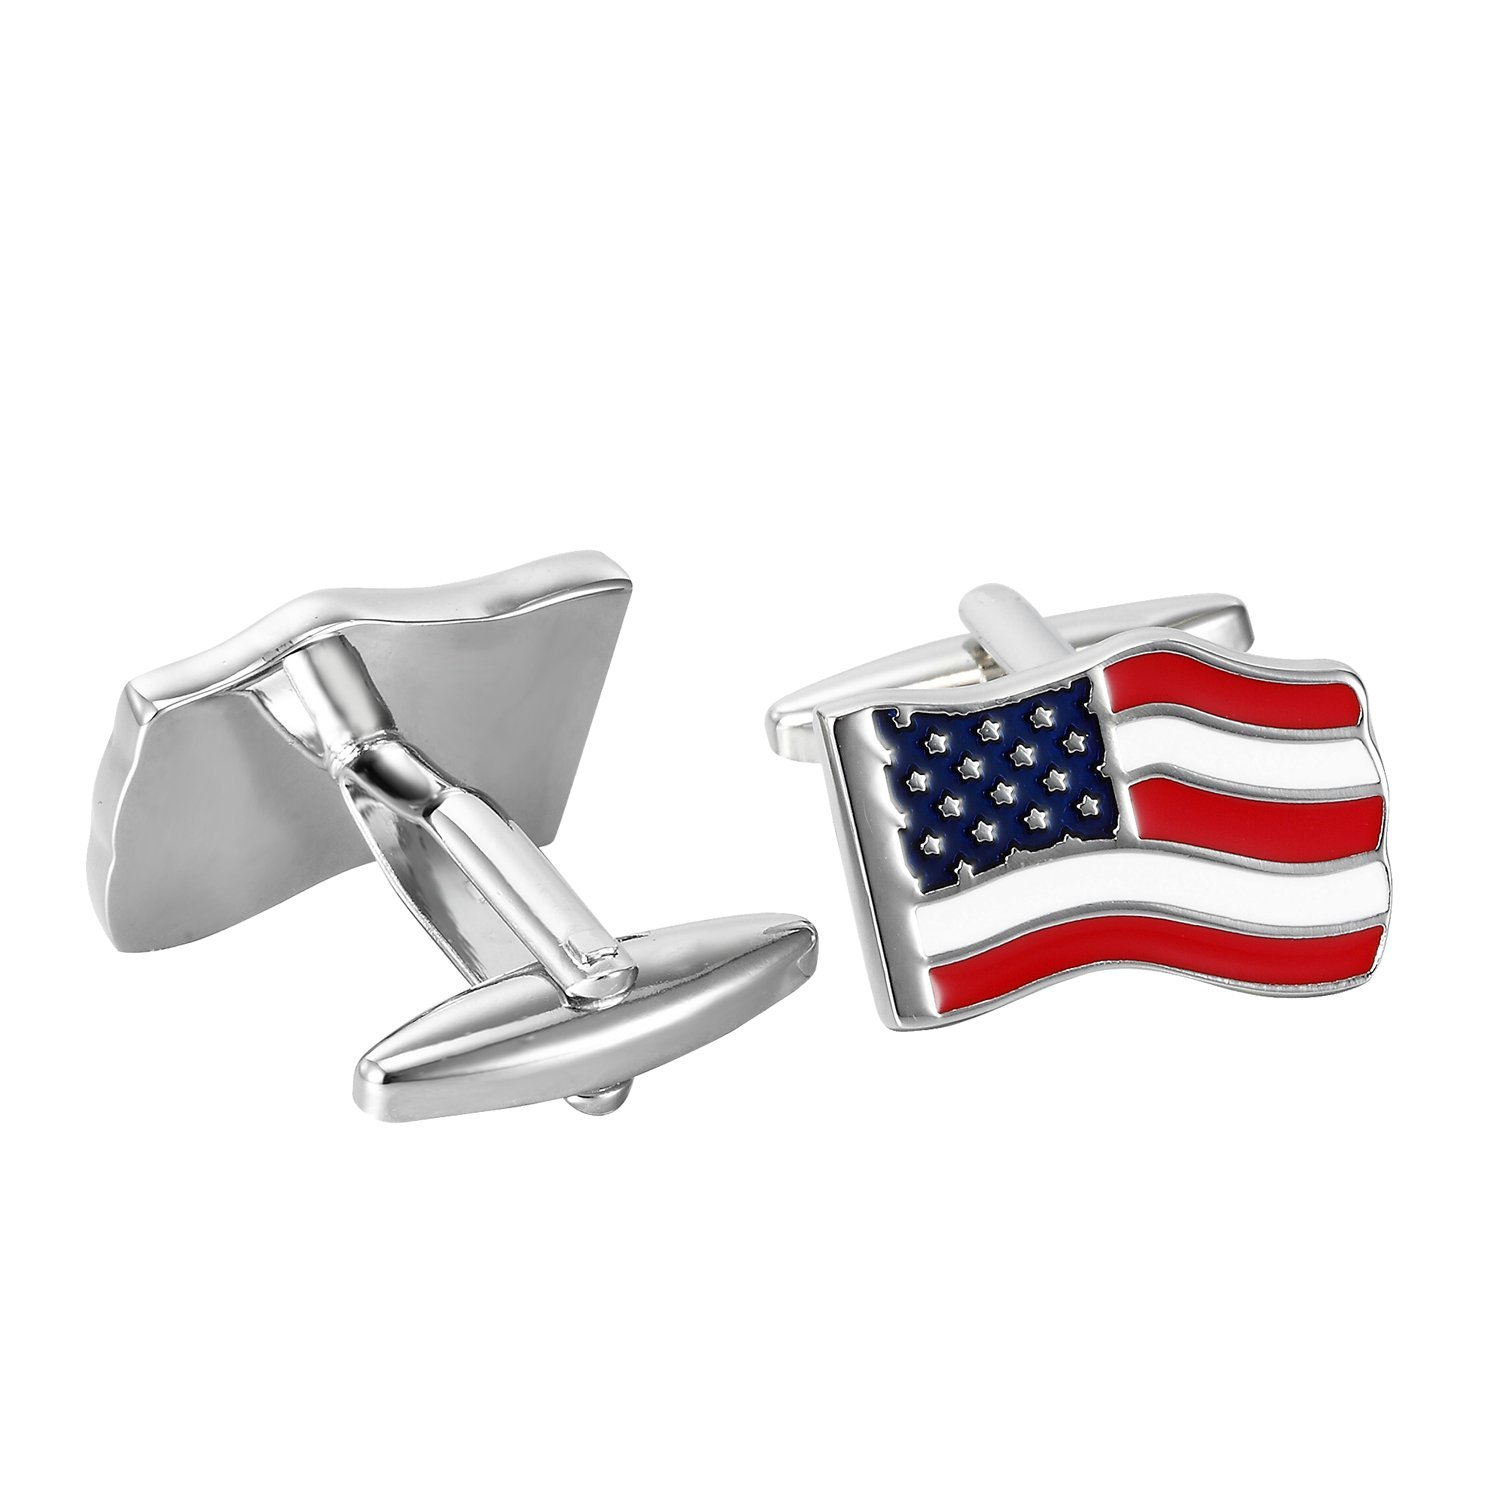 Urban Jewelry Loyal Patriot Stainless Steel USA Flag Men's Cufflinks (Red, Blue, White, Silver) by Urban Jewelry (Image #4)